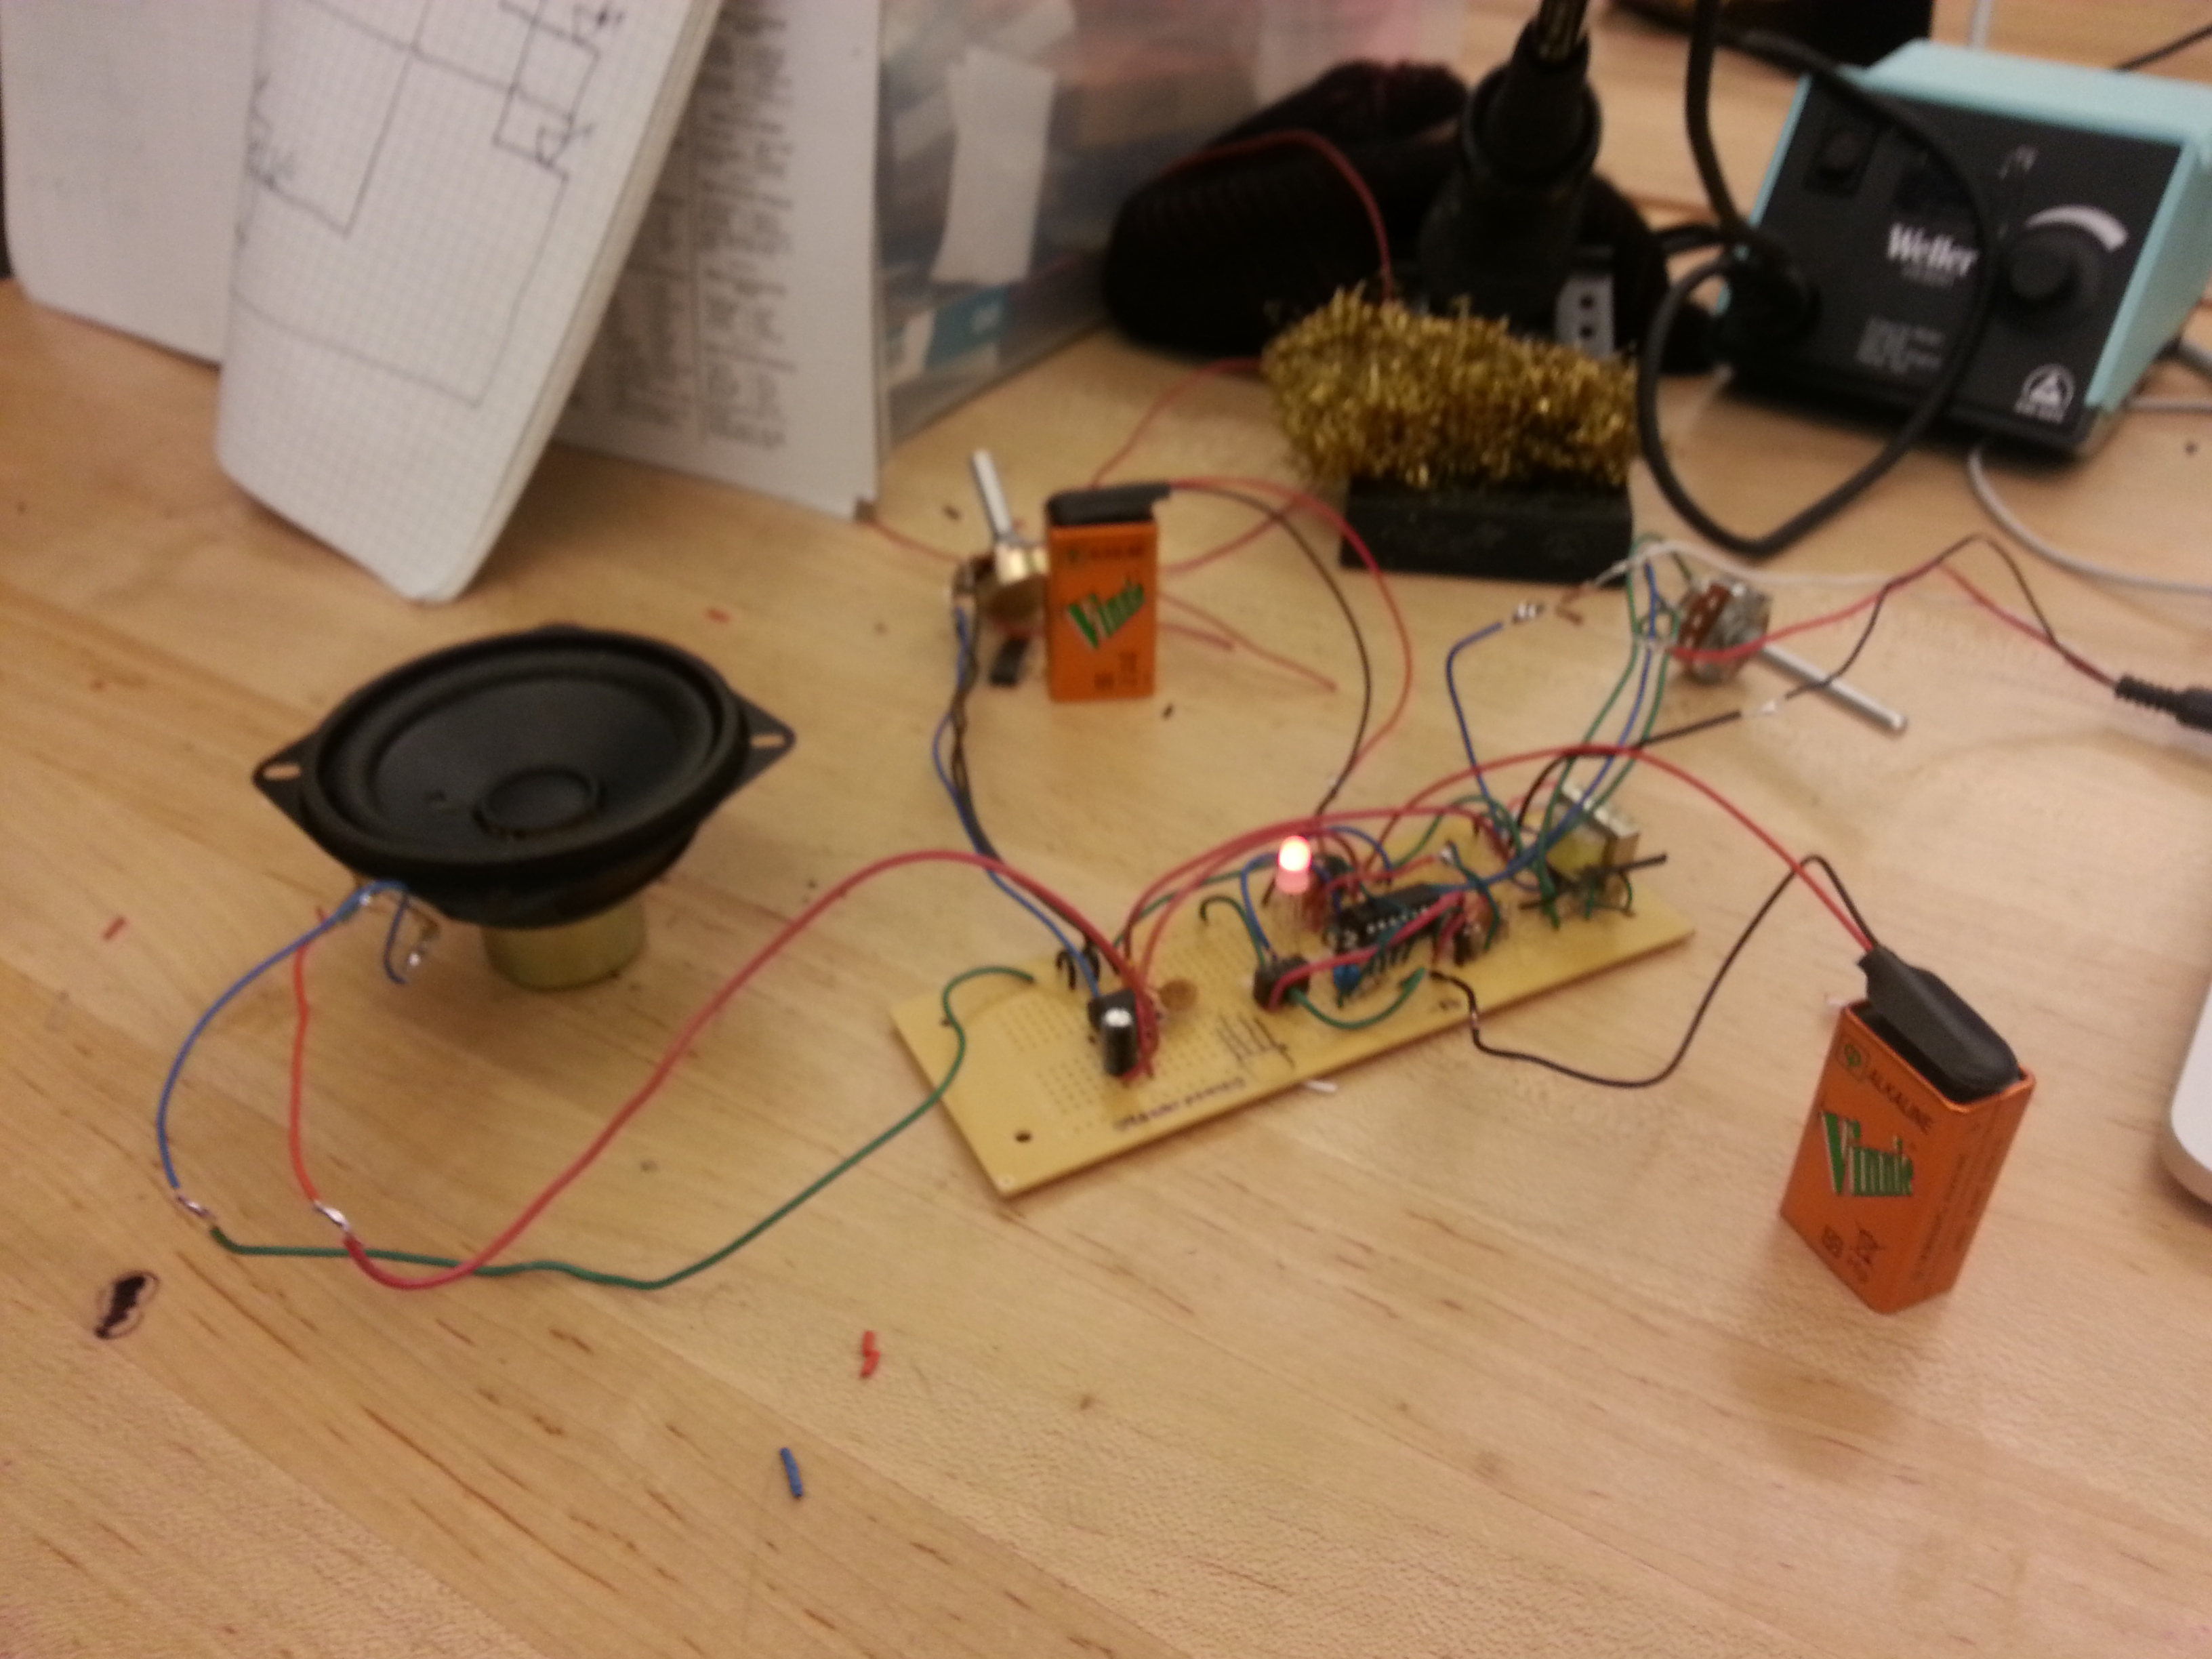 Build a circuit that can change the color of an LED with the sound being put out of an MP3 player.